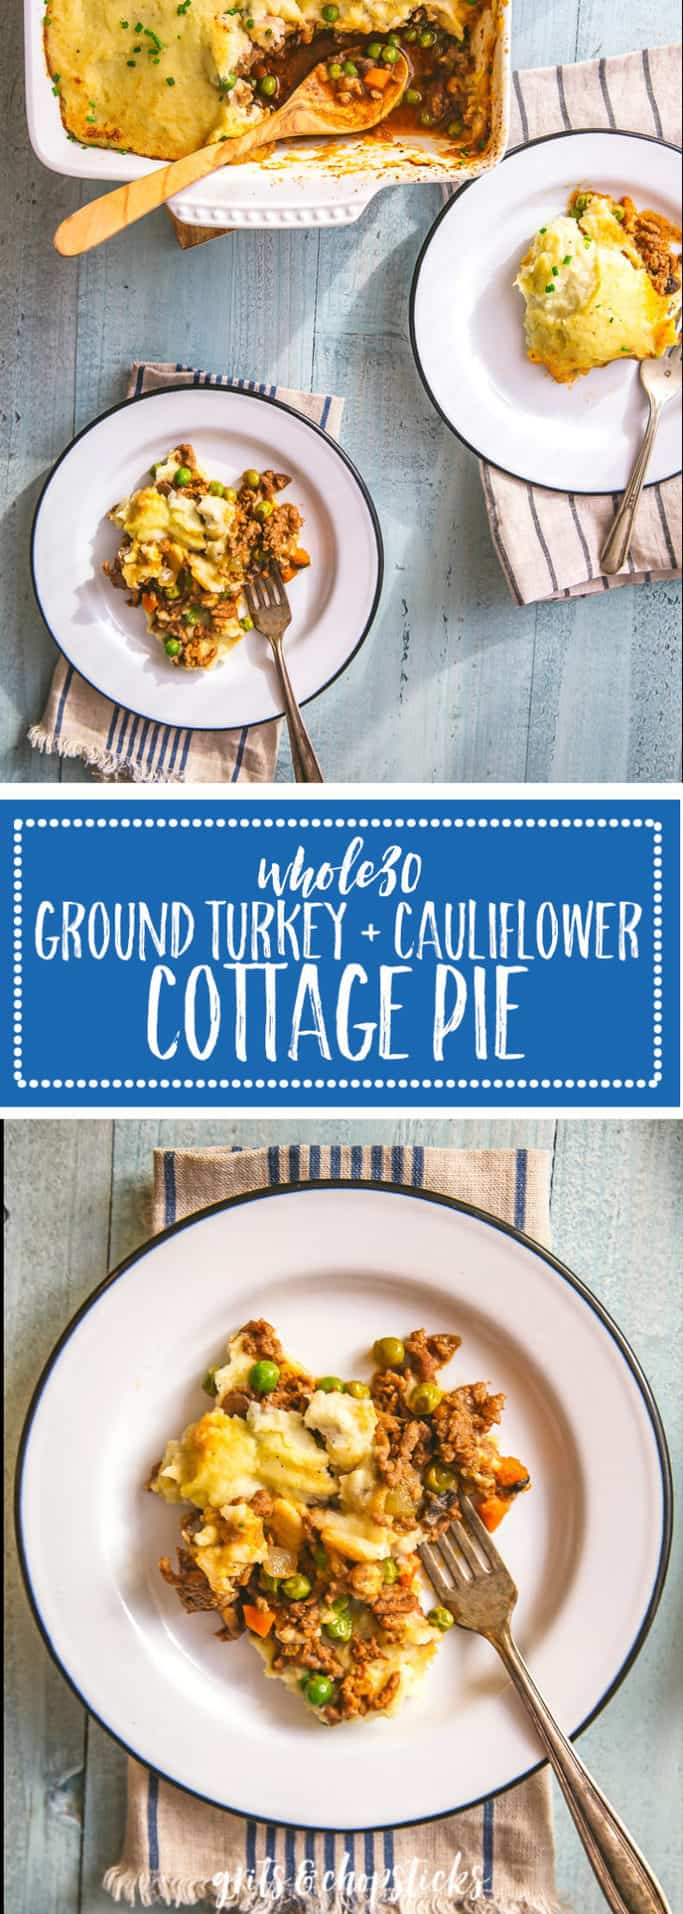 For a lighter comfort dish, try this Whole30 ground turkey and cauliflower cottage pie recipe -- it's a healthier take on a classic British dish of ground beef and mashed potatoes!